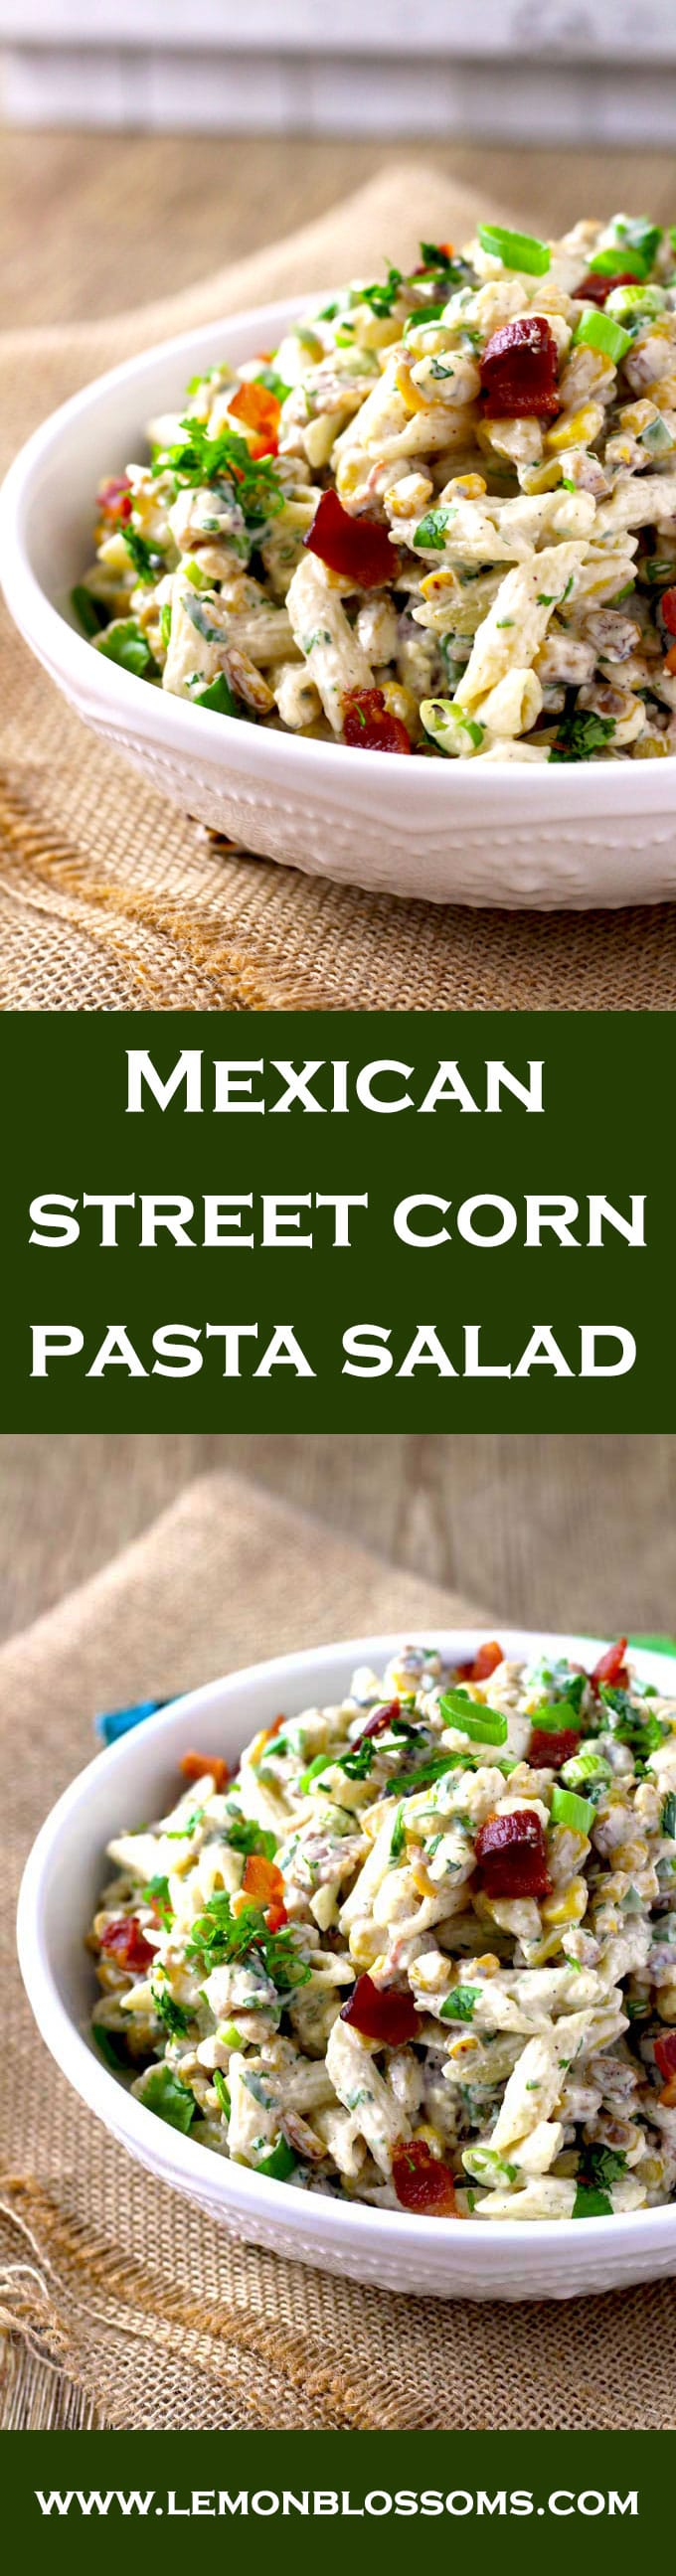 Perfectly charred corn is the star of this Mexican Street Corn Pasta Salad. Tossed in a creamy chili-lime cilantro dressing with Cotija cheese and crumbled bacon. Easy to make, super flavorful and  the ideal dish to make for your next gathering.